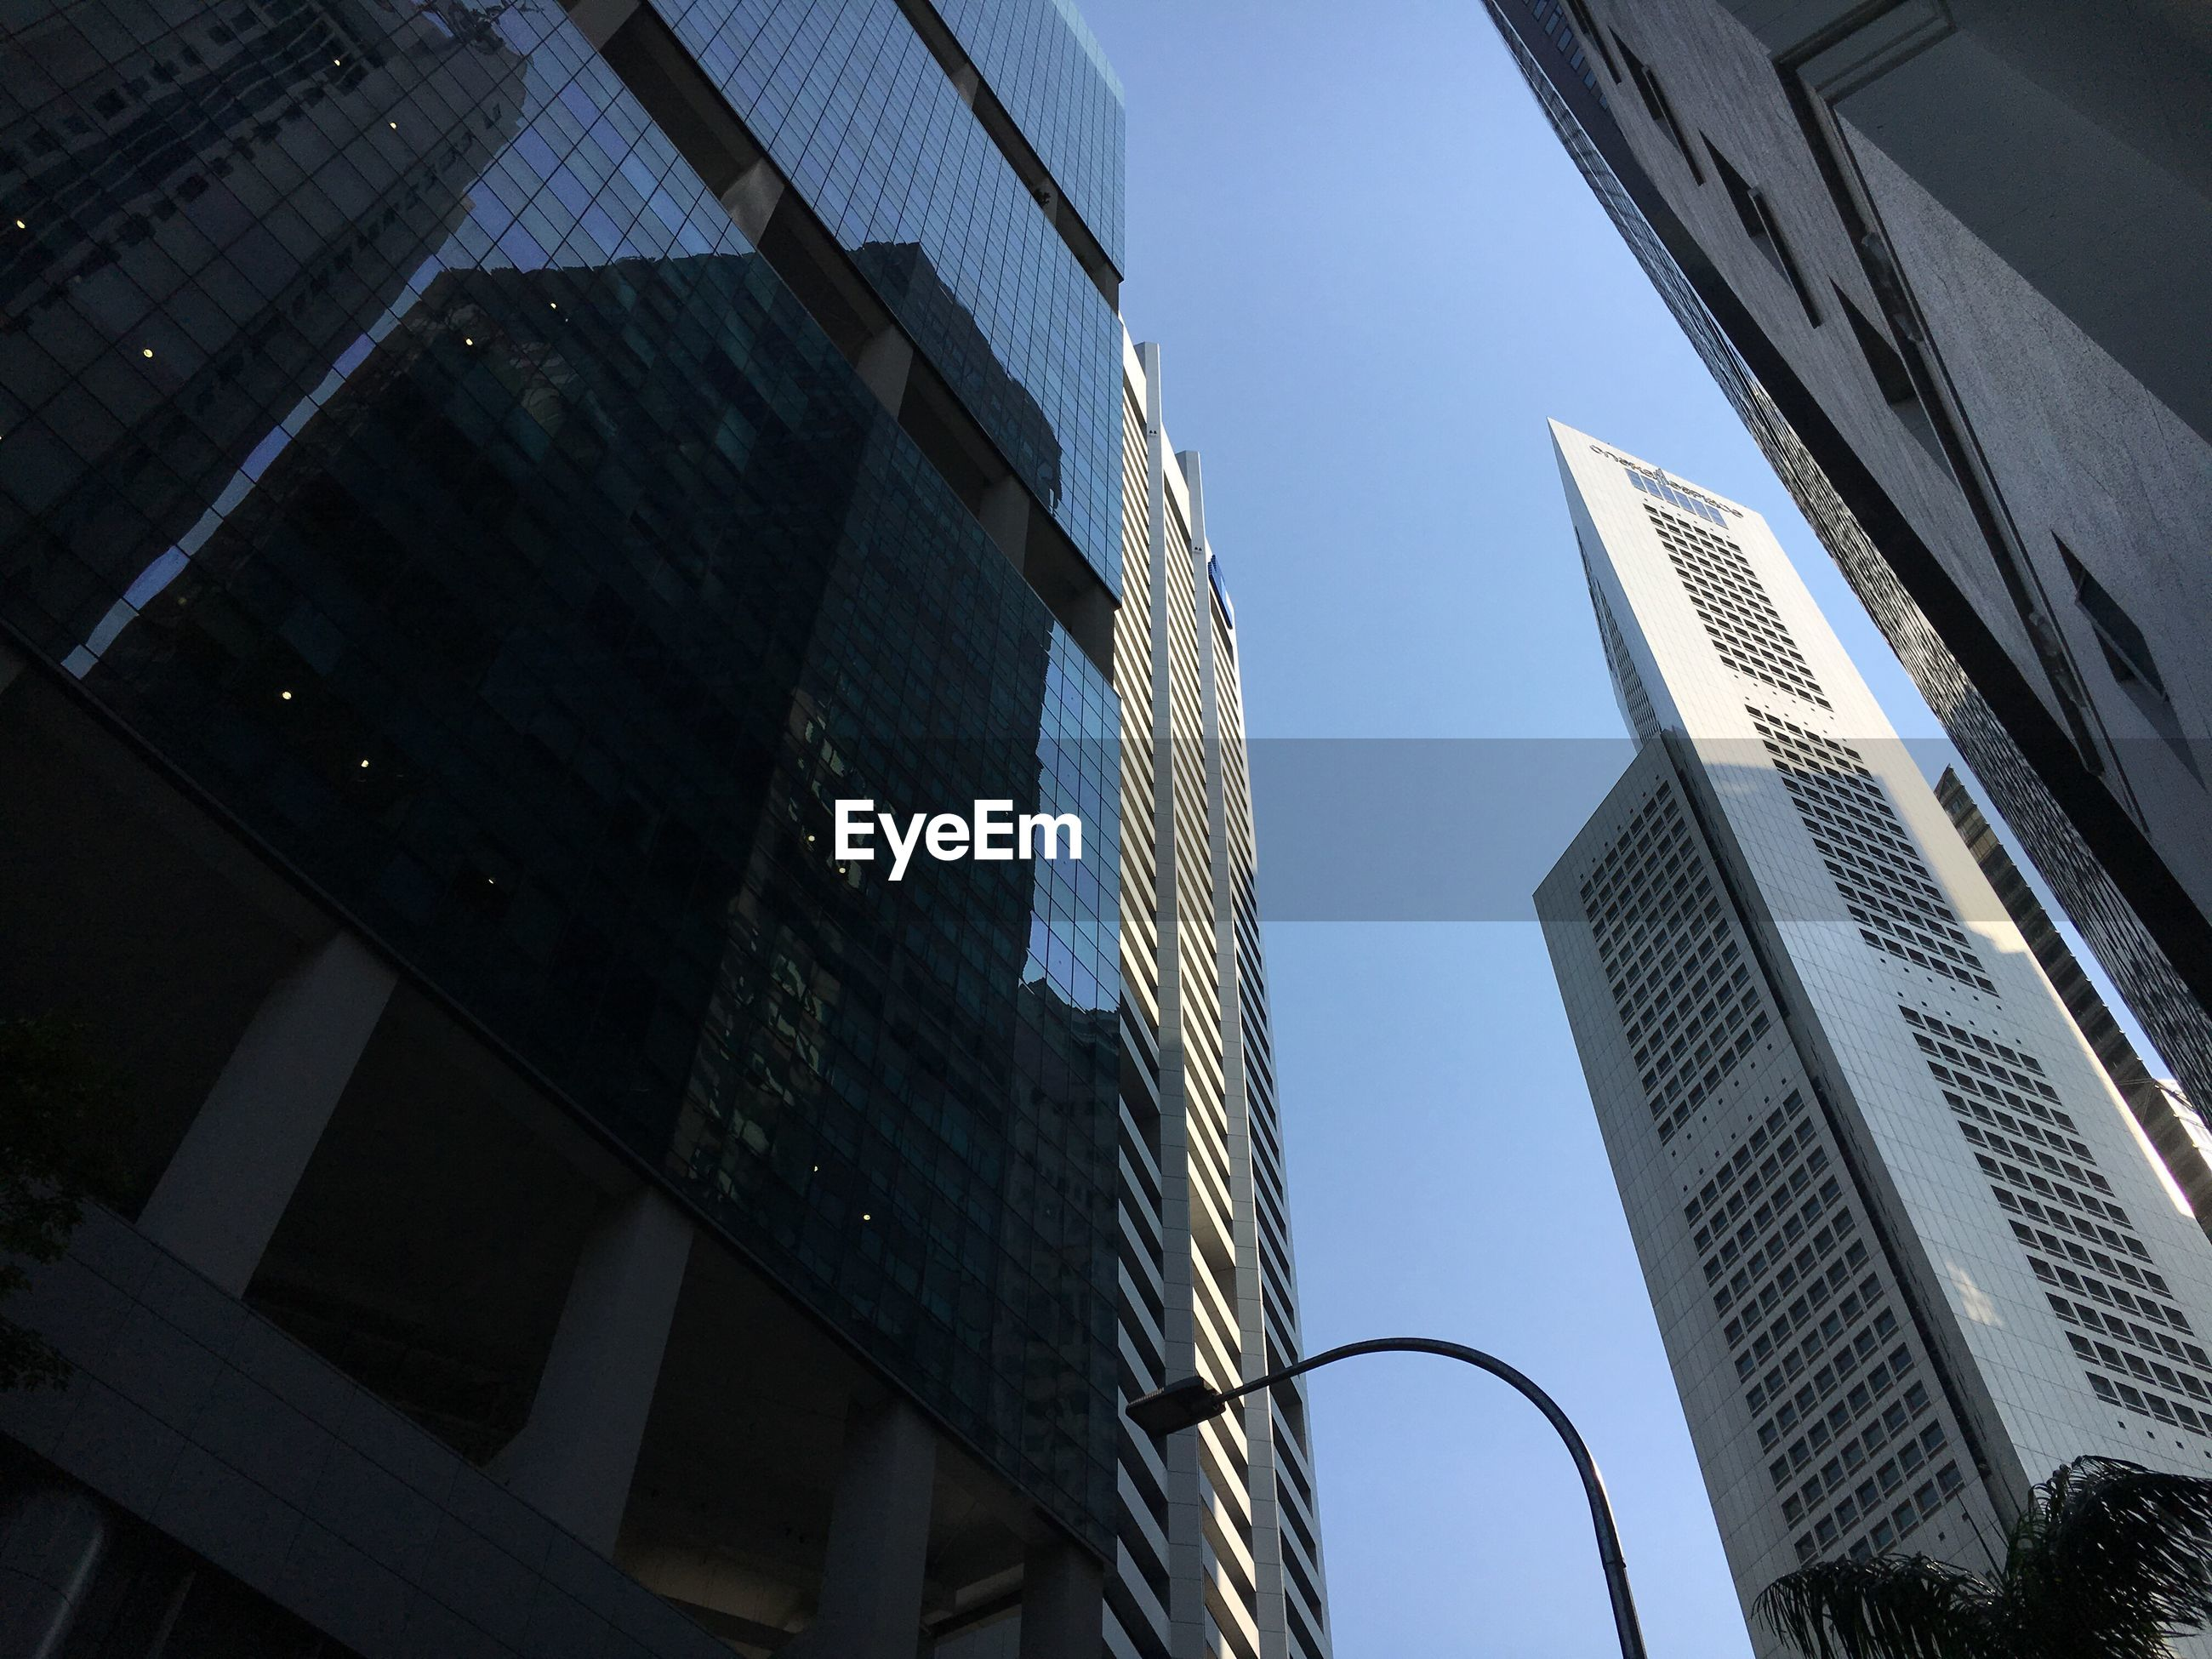 LOW ANGLE VIEW OF MODERN SKYSCRAPERS AGAINST CLEAR SKY